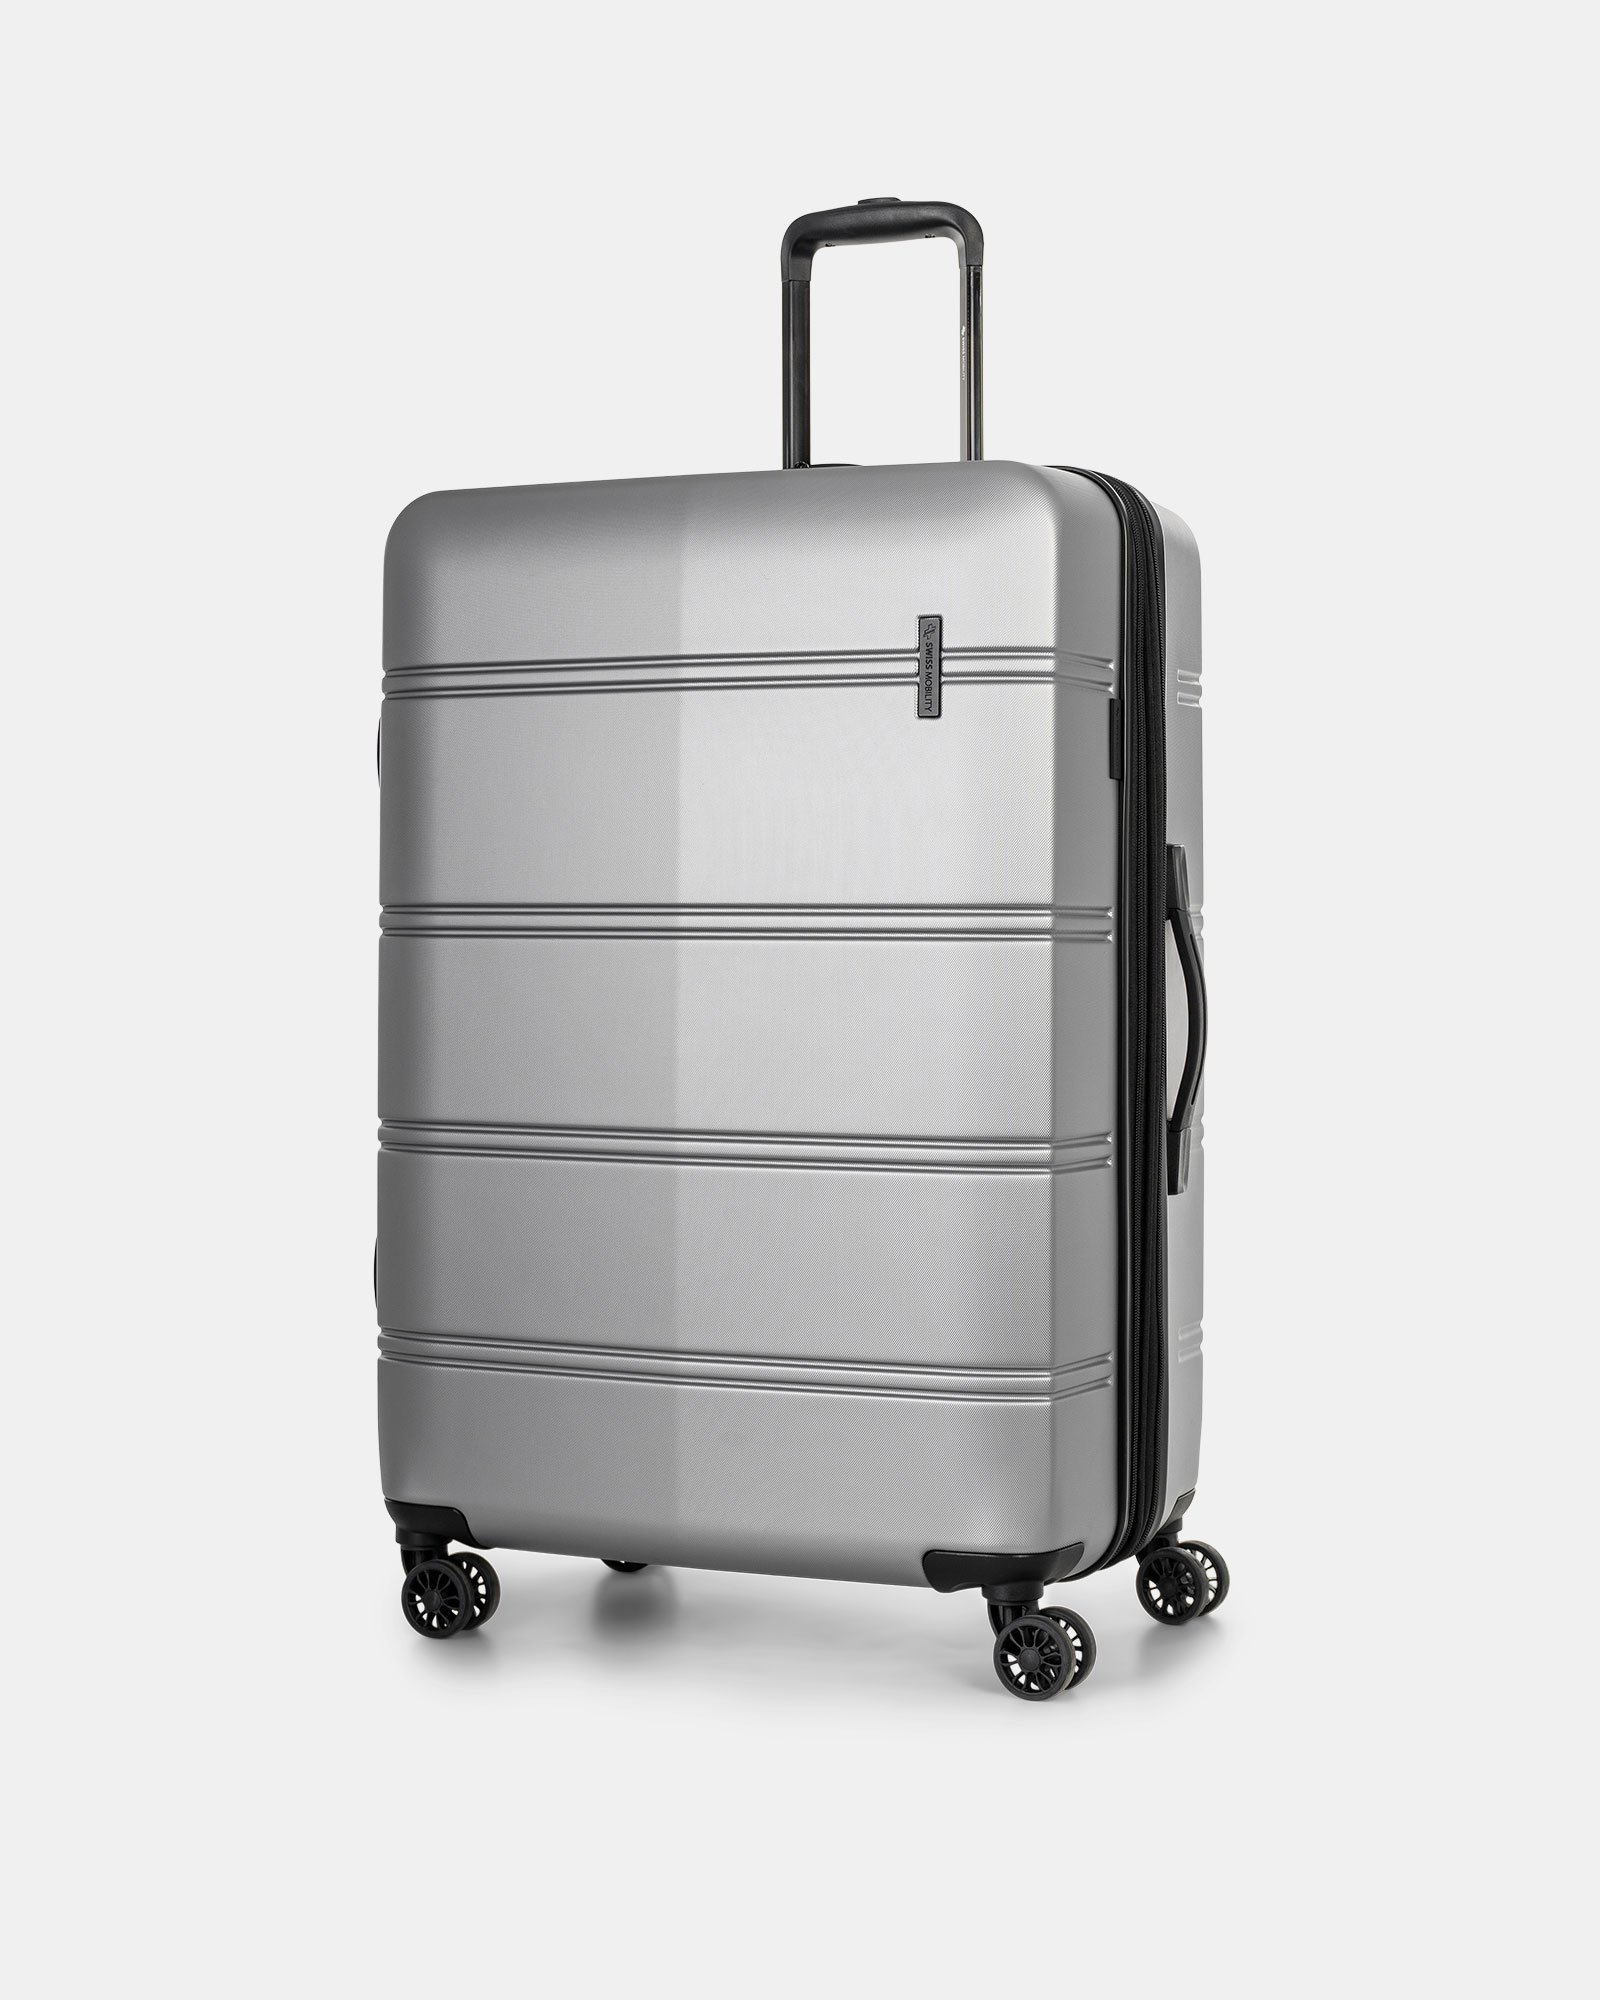 """LAX - 30"""" LIGHTWEIGHT HARDSIDE LUGGAGE - Silver - Swiss Mobility - Zoom"""